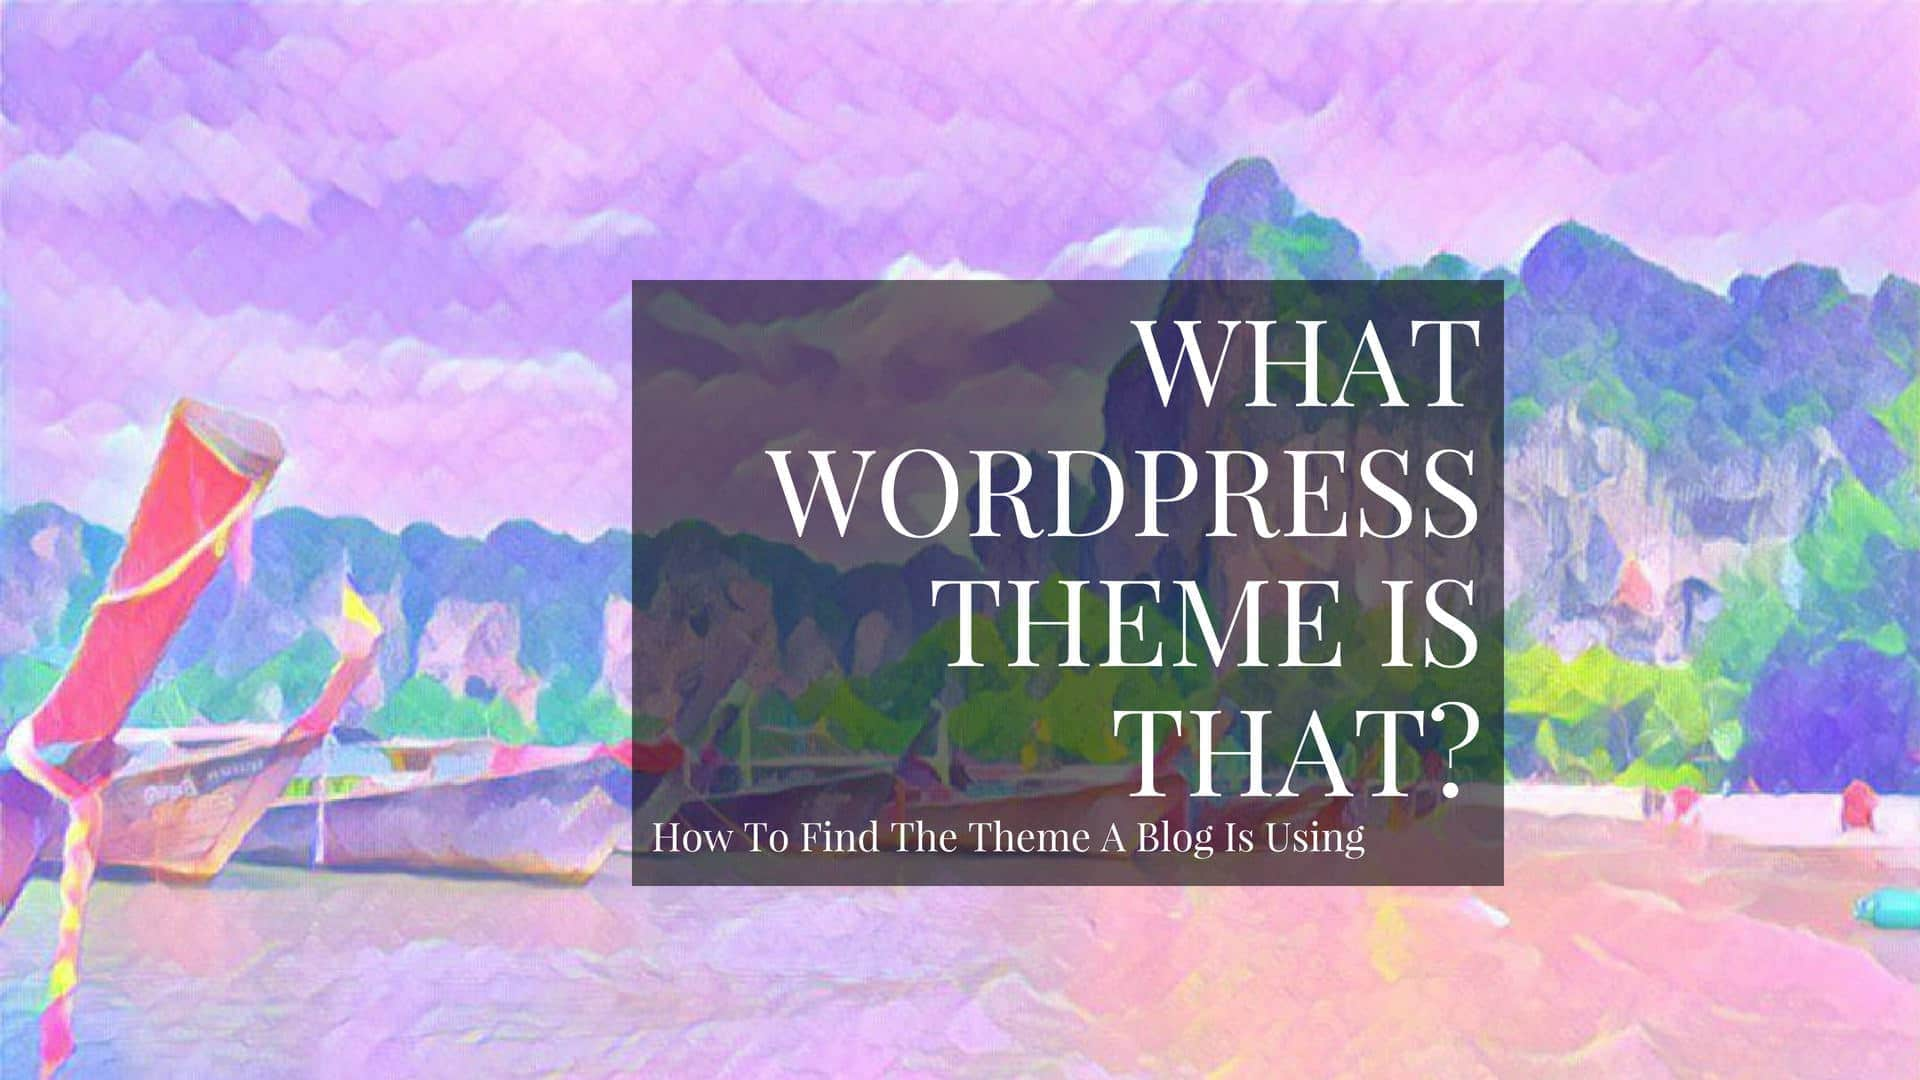 Have you discovered a pretty looking blog and are you now wondering what WordPress theme that blog is using?